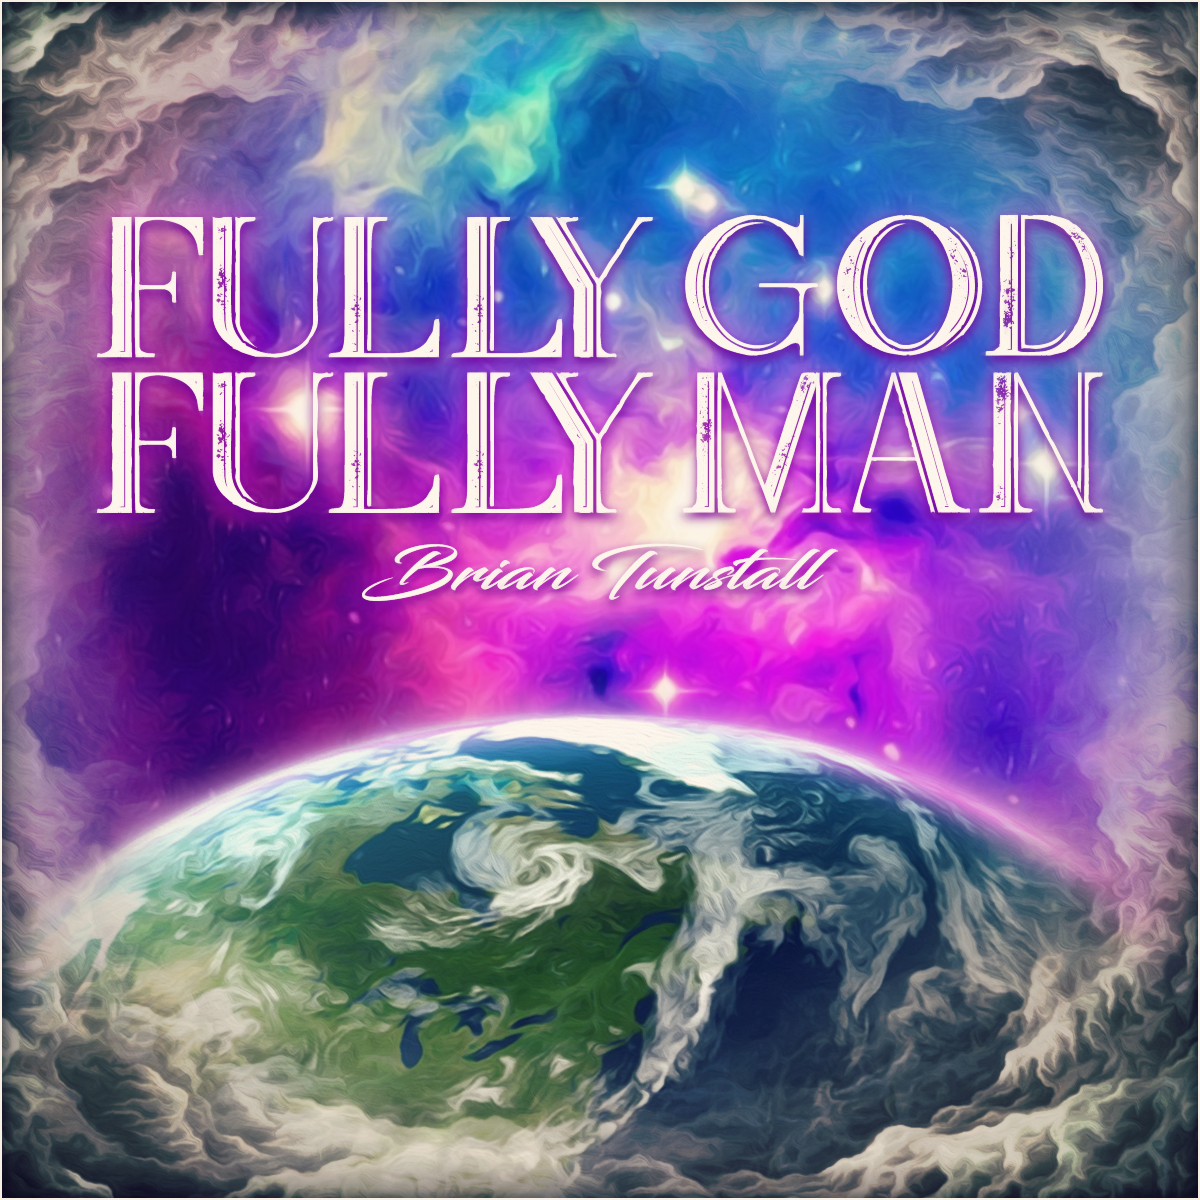 Fully God Fully Man by Brian Tunstal